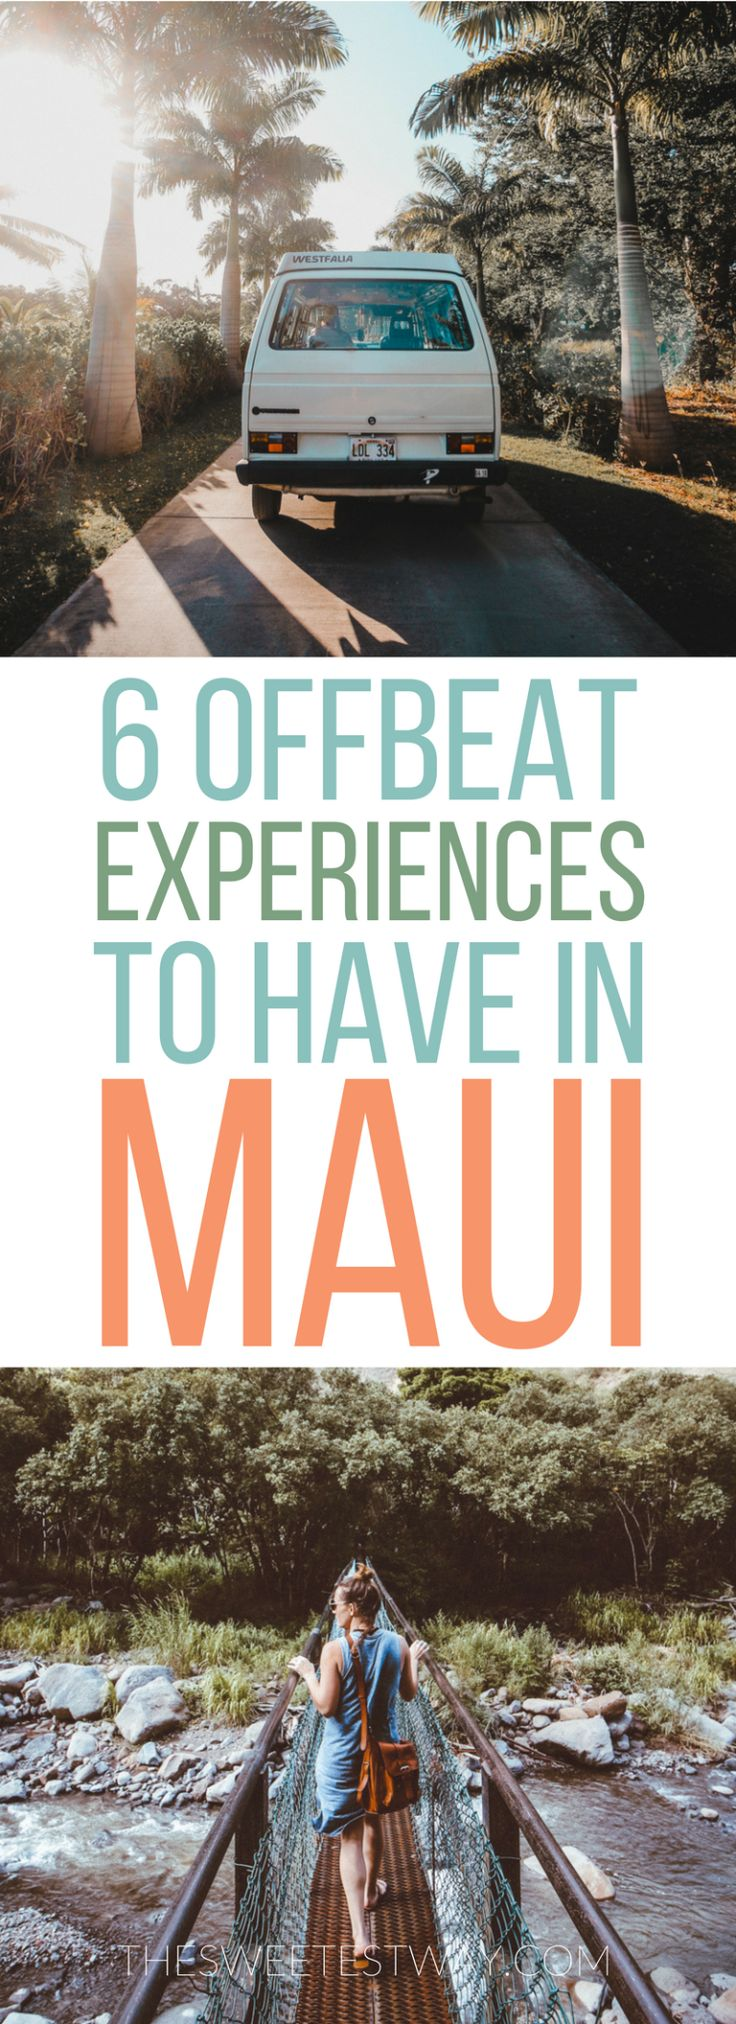 6 Offbeat Maui Experiences You Never Knew You Wanted to Have